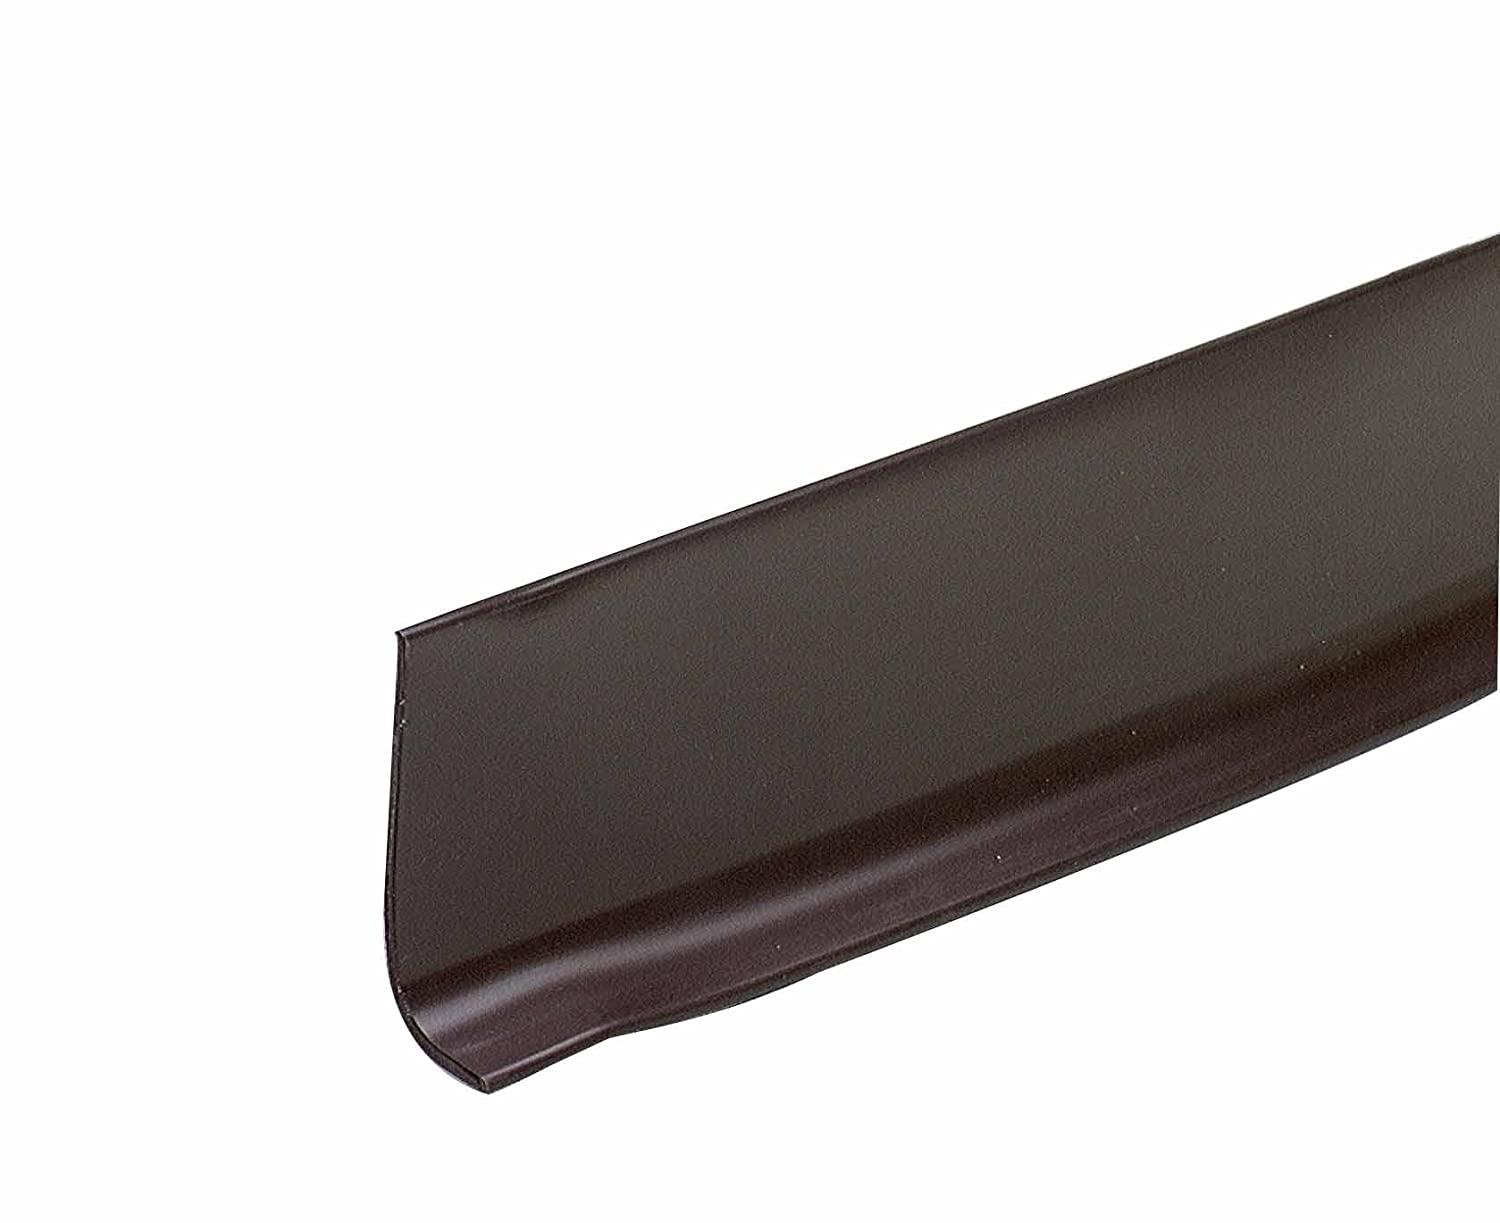 M-D Building Products 75655 2-1/2-Inch by 4-Feet Dry Back Vinyl Wall Base, Desert Beige